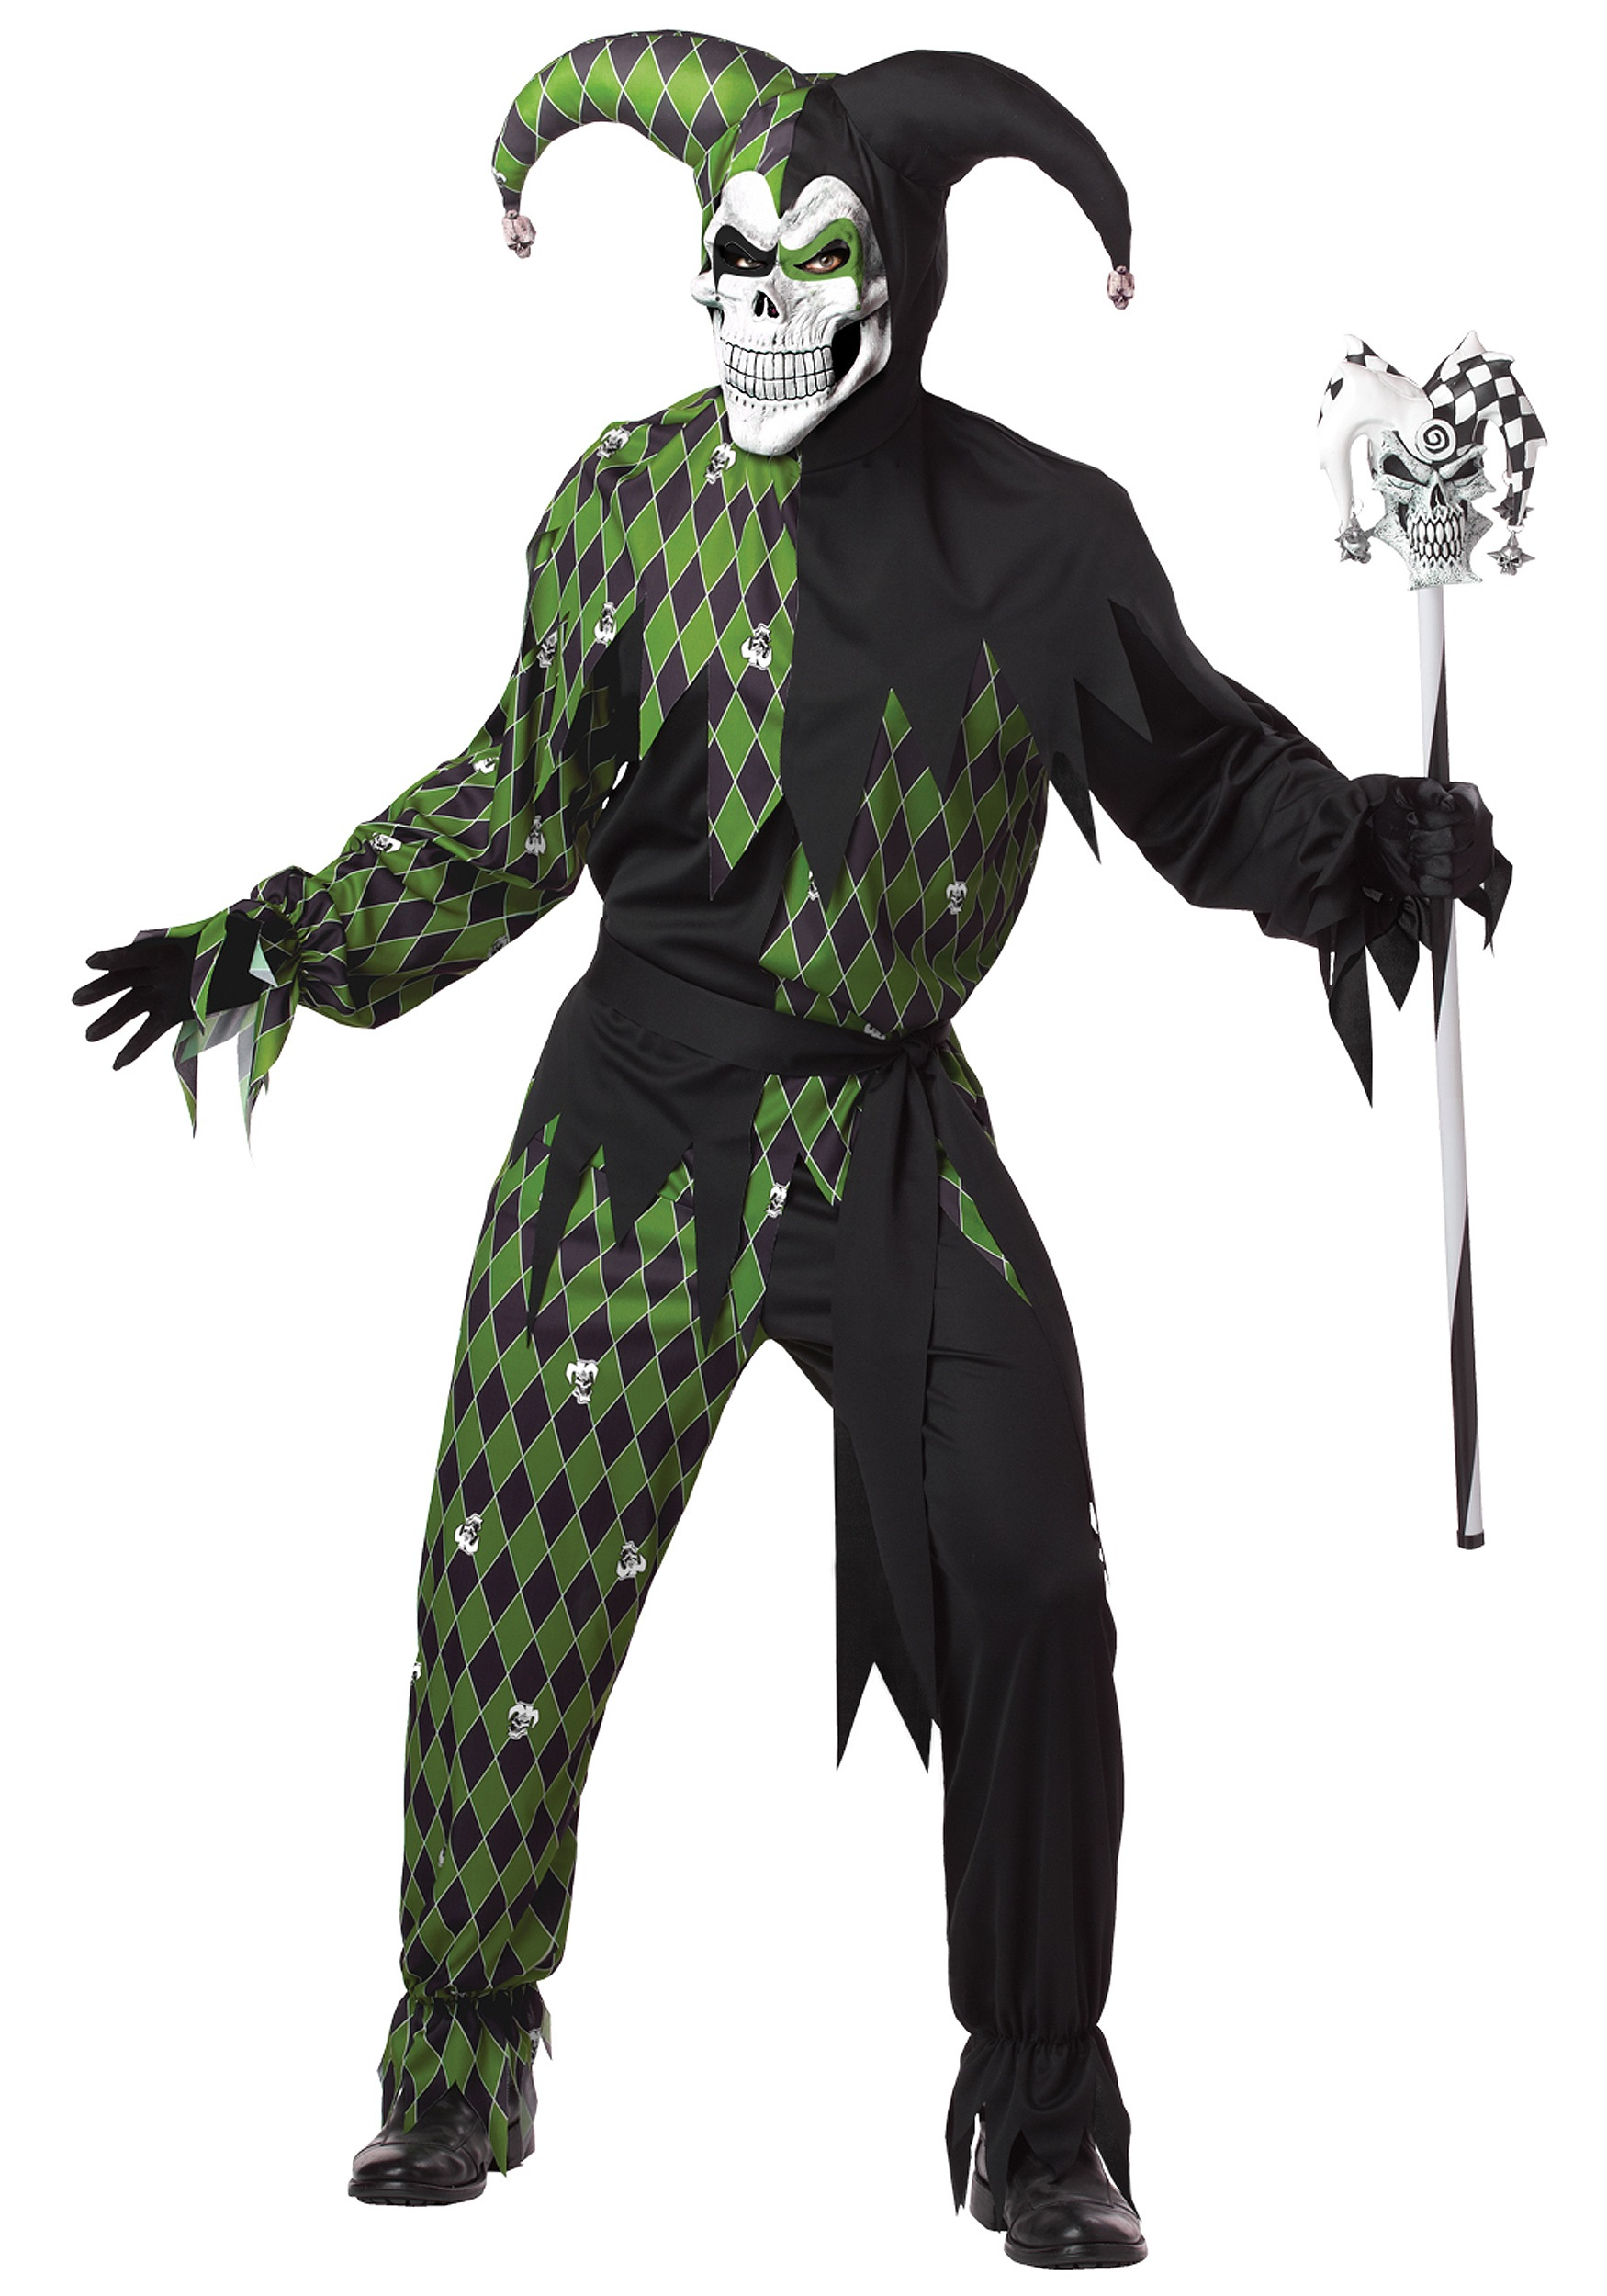 Jester costumes halloweencostumes mens green scary jester costume solutioingenieria Image collections